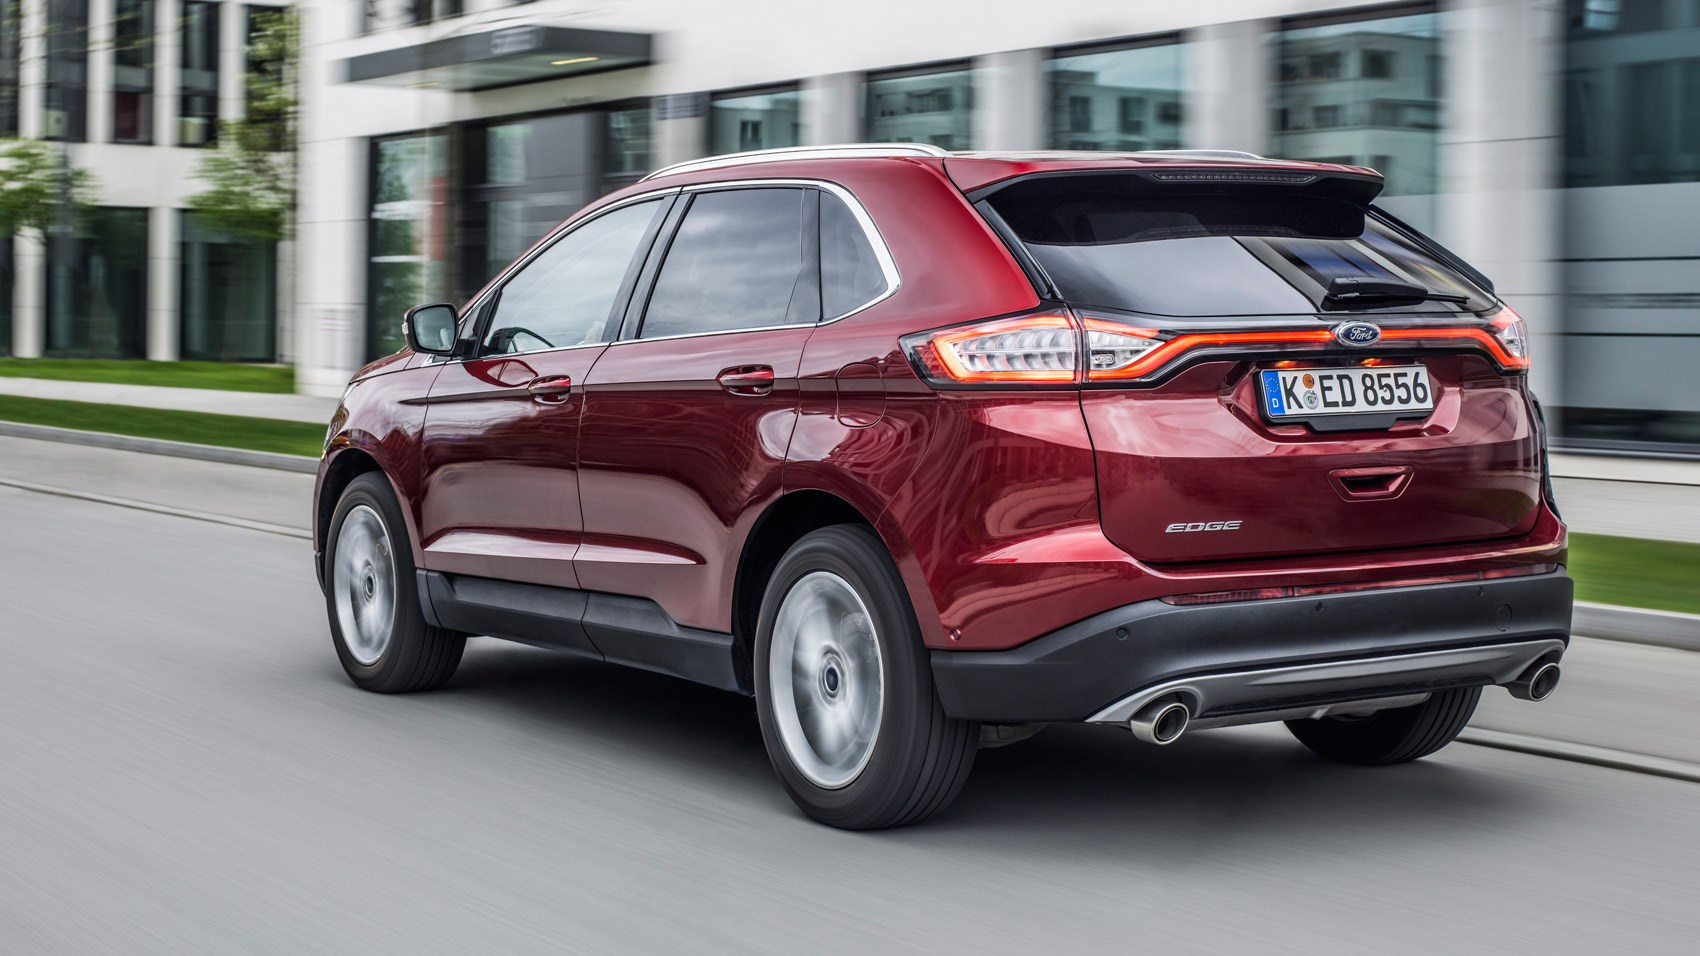 0 Down Lease >> Ford Edge 2.0 TDCi Titanium Powershift (2016) review by ...